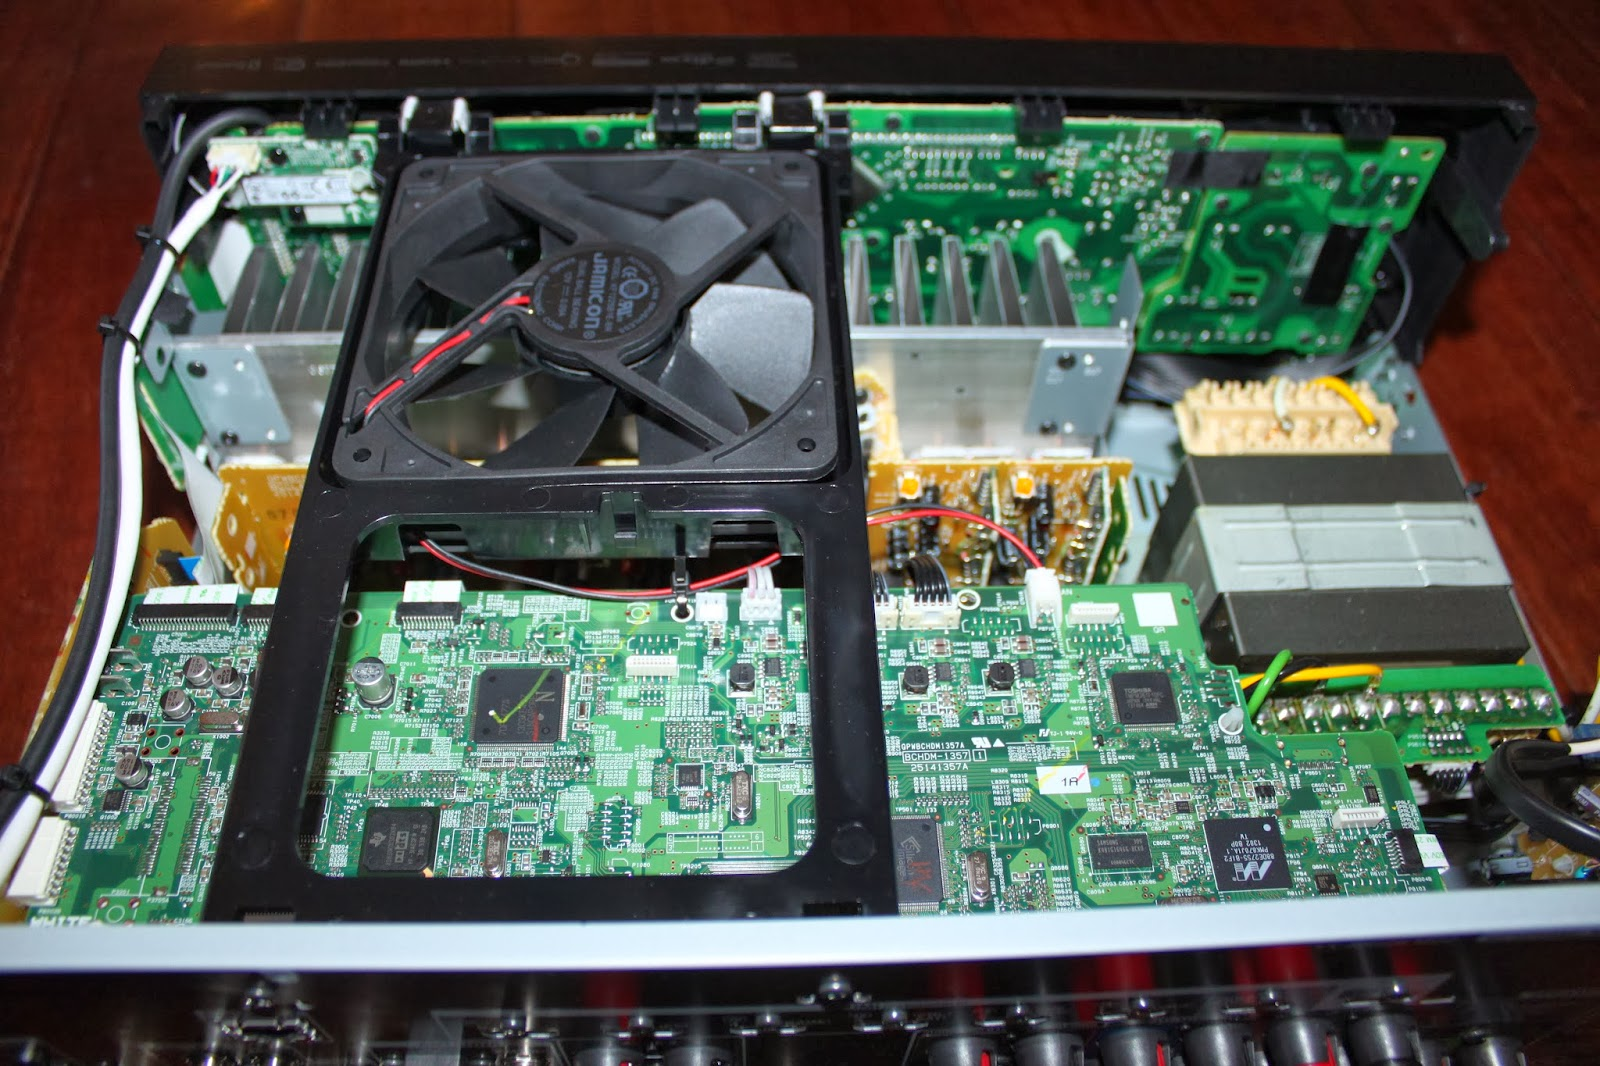 Stereowise Plus: Onkyo TX-NR626 7.2 Channel Network A/V Receiver Review